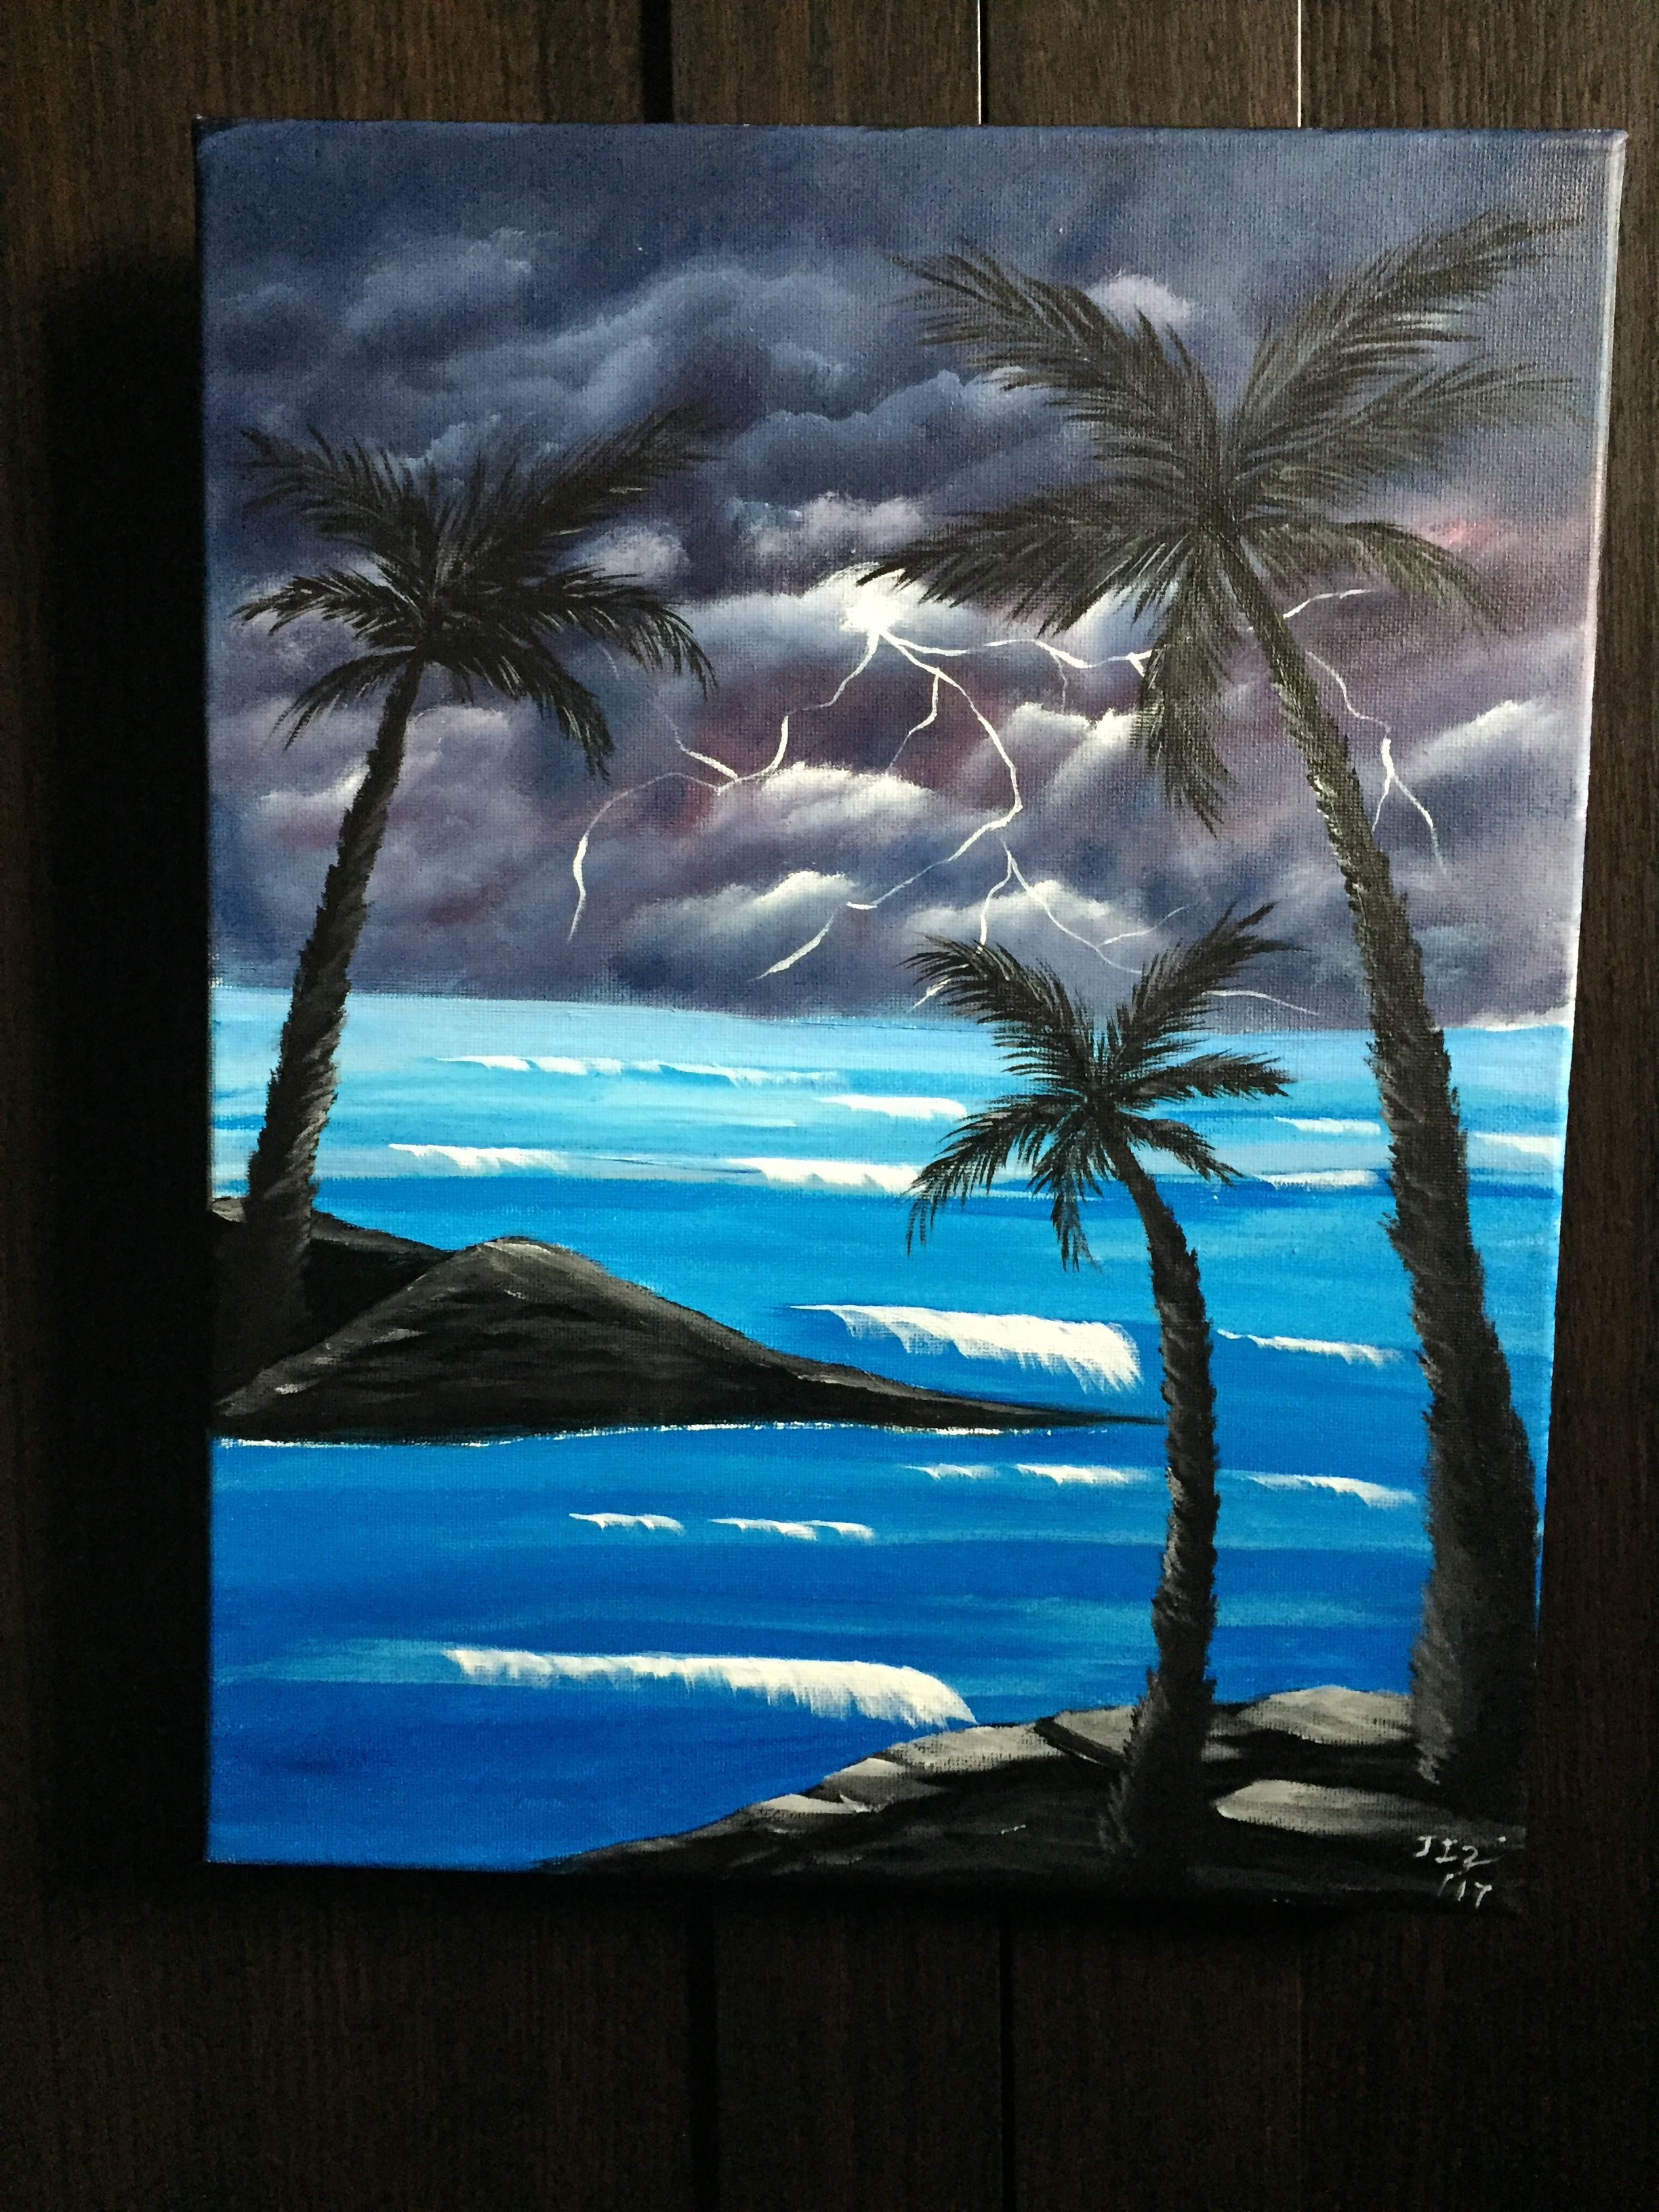 Storm Acrylic Painting on Canvas